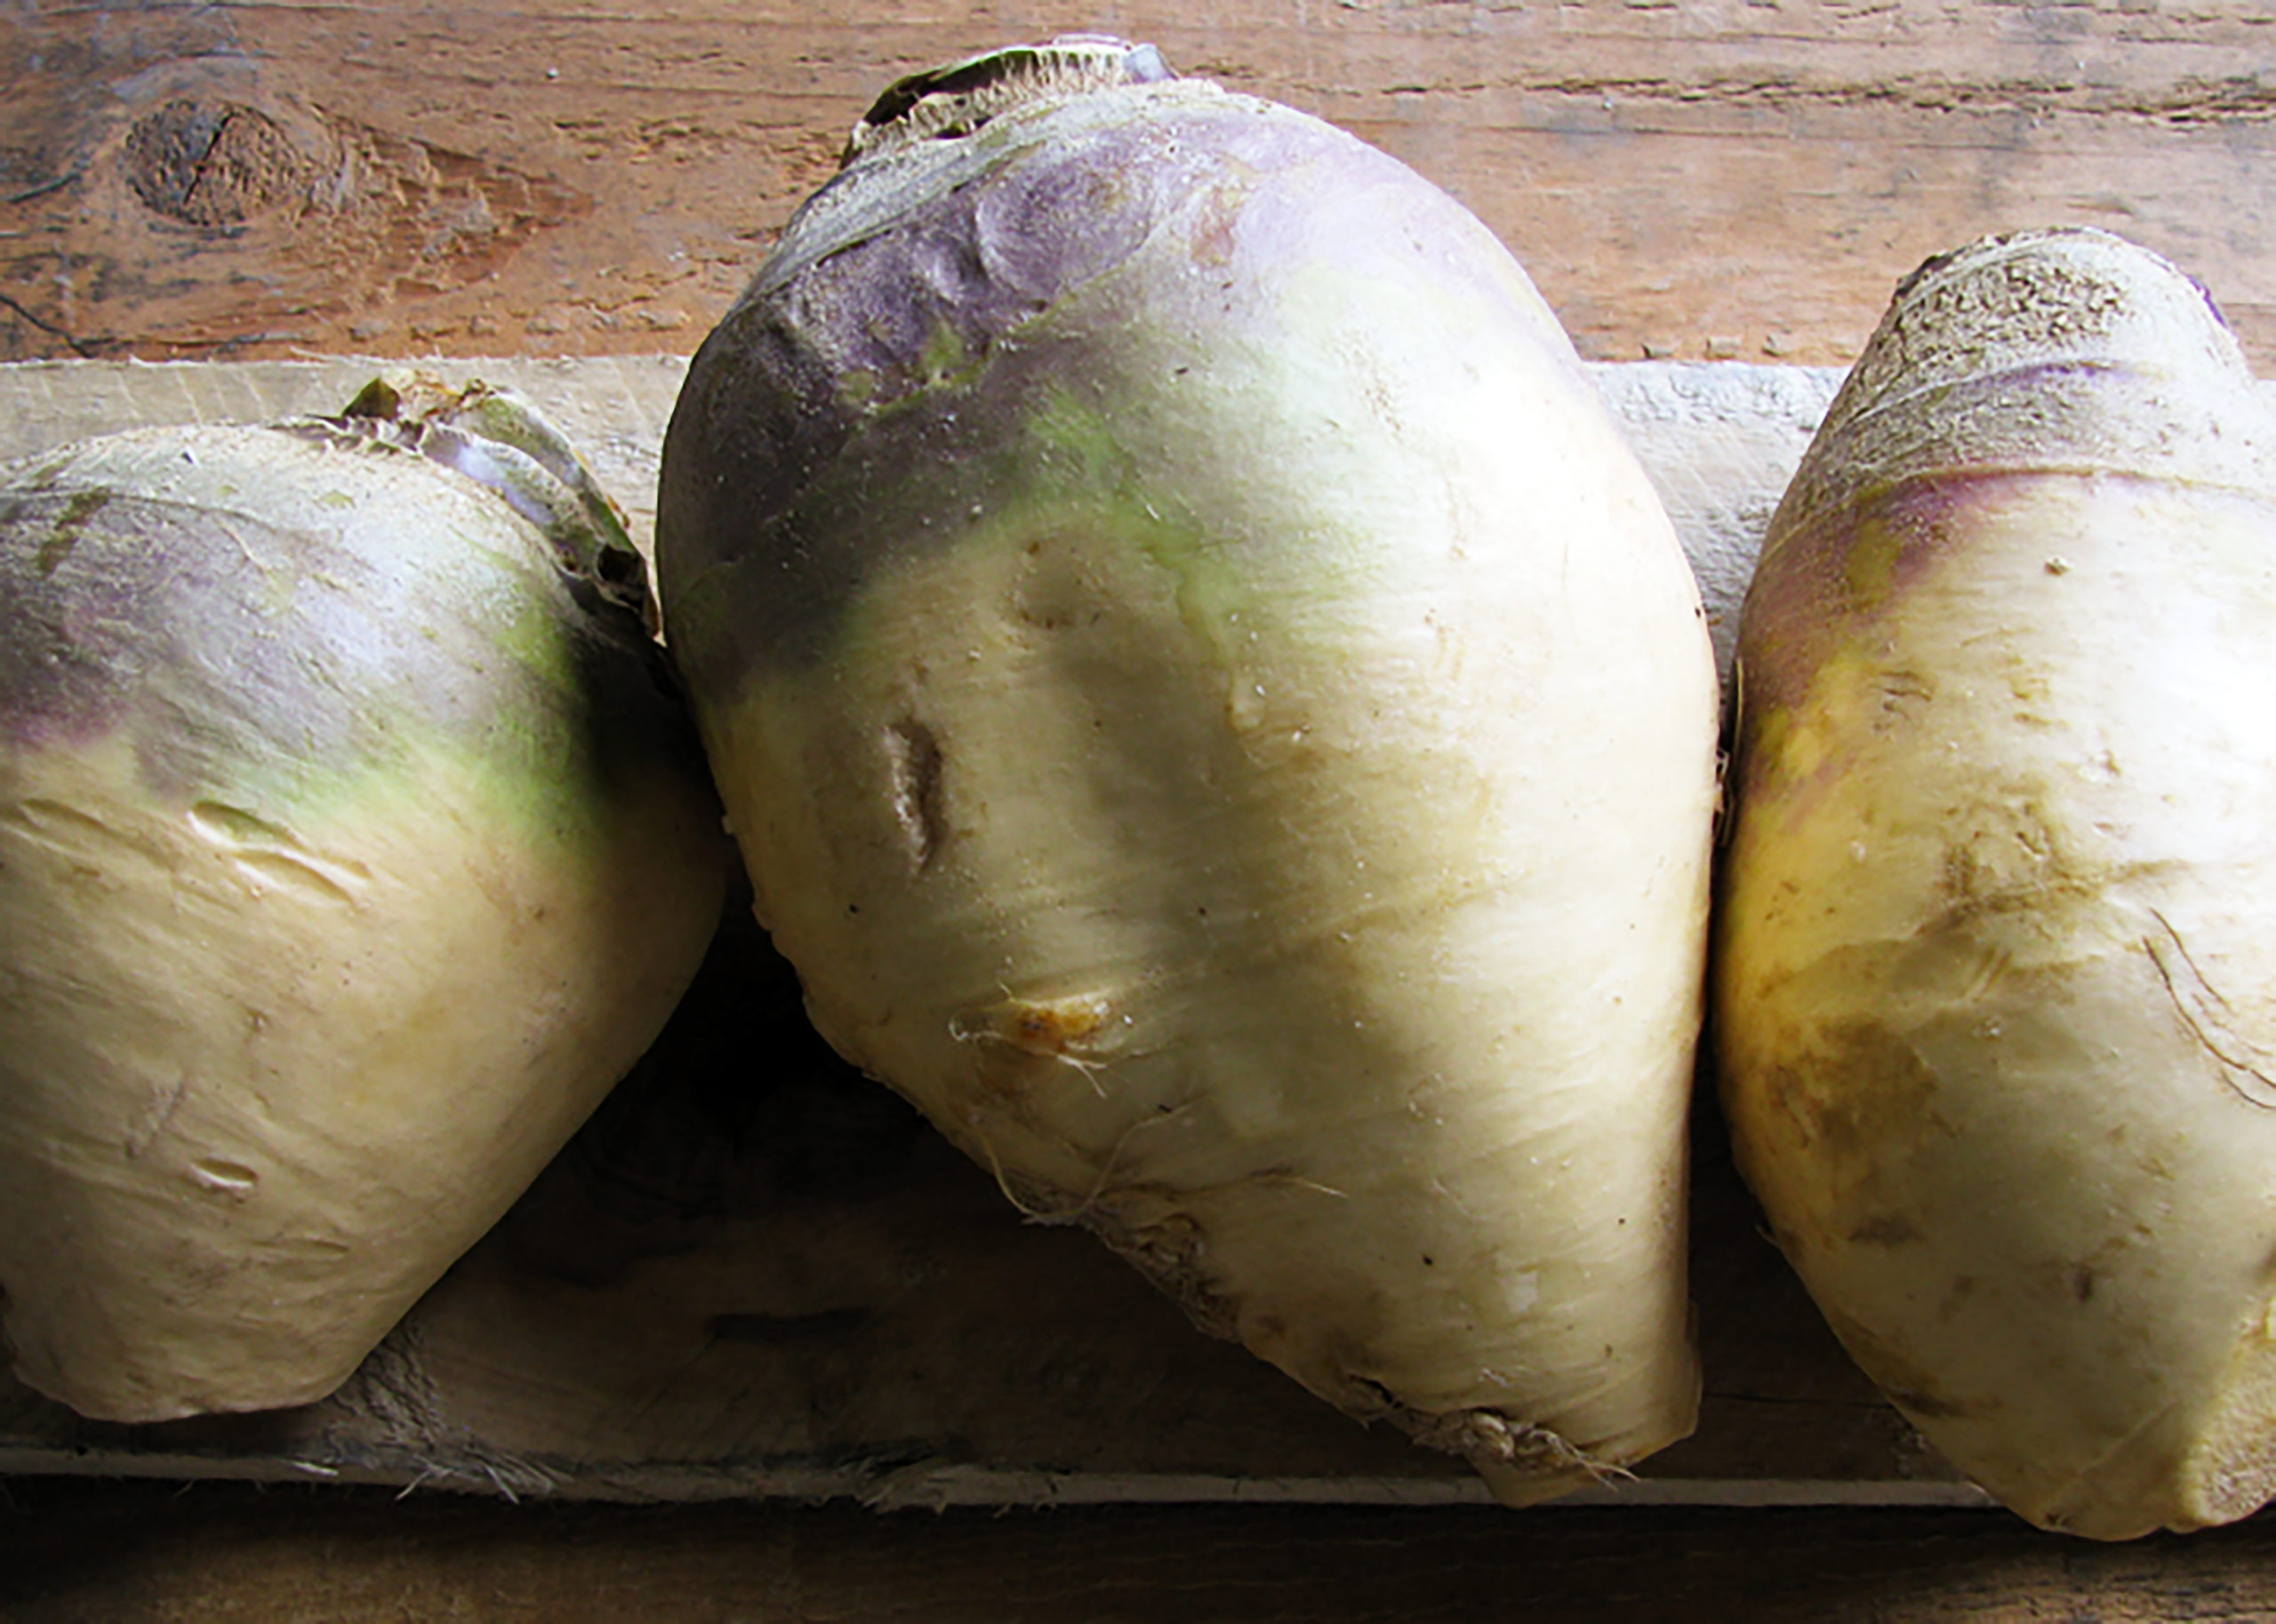 slightly purple topped rutabagas with longer yellow bodies pulled from the ground.